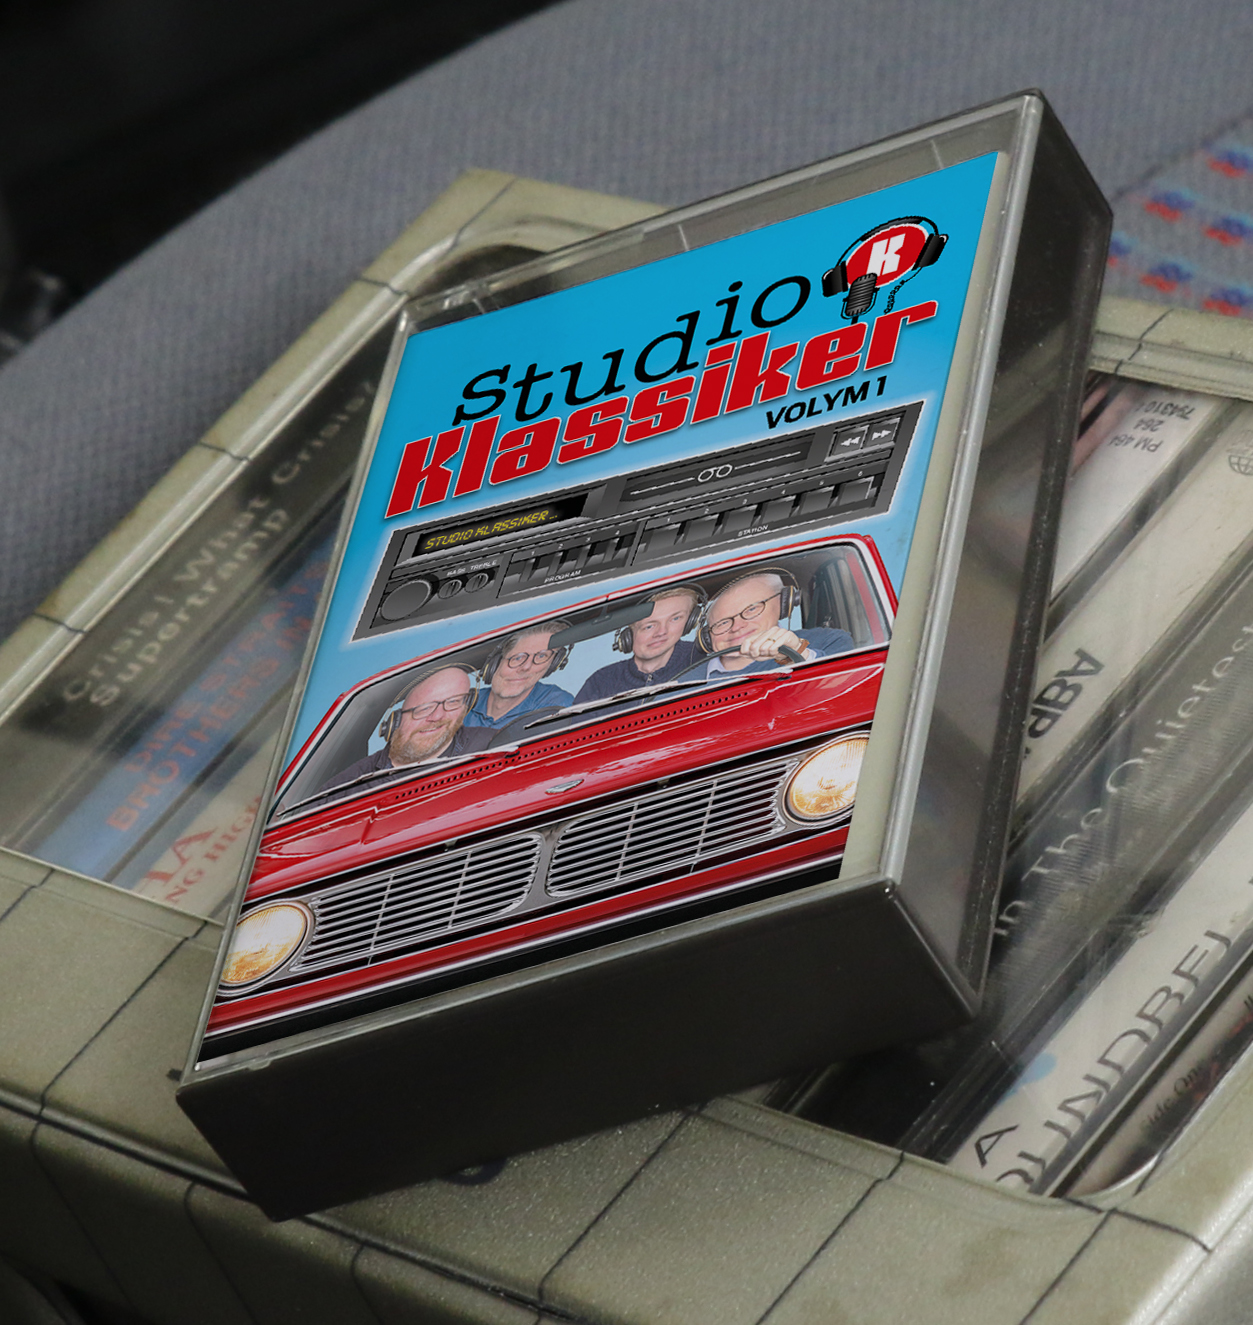 Of course, the cassette fits right into the assigned storage cubby in many 1980s cars.